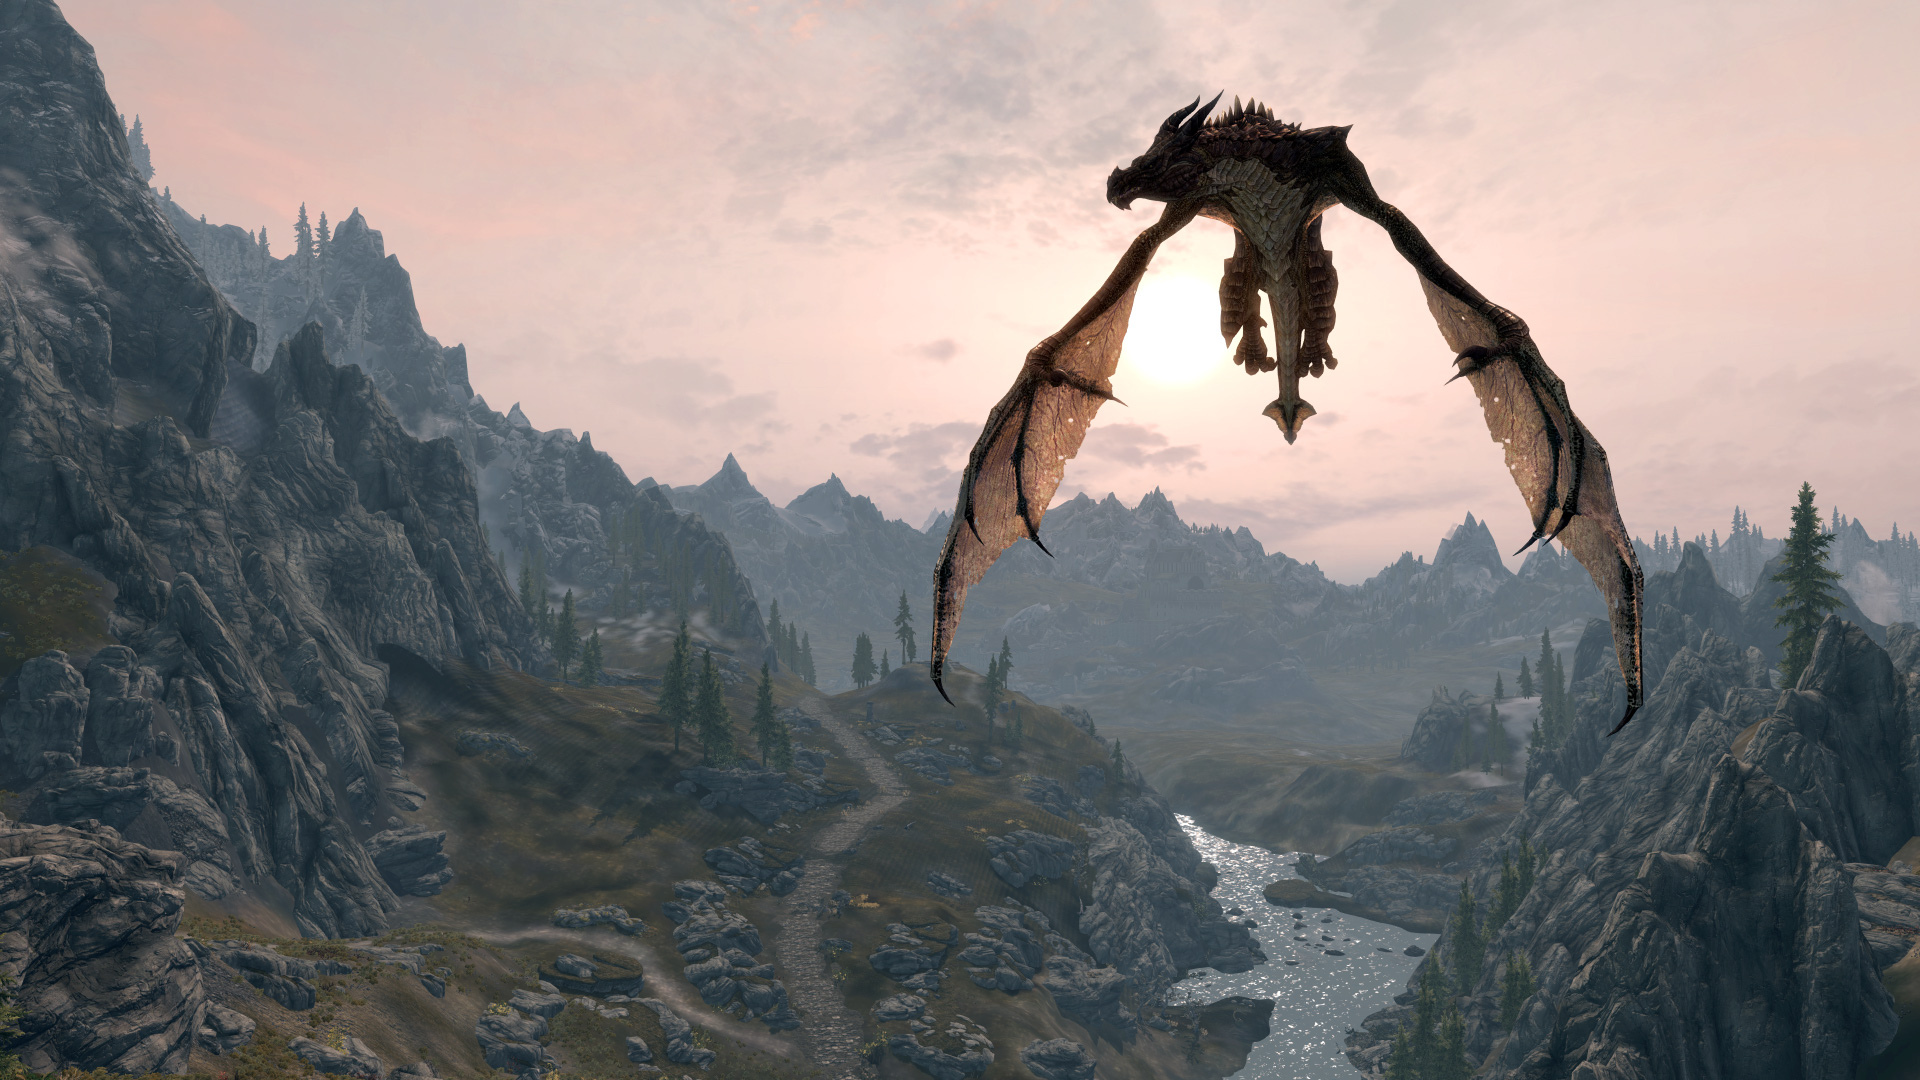 Skyrim Wallpaper 1080p Peasant Miscers With Small Screens